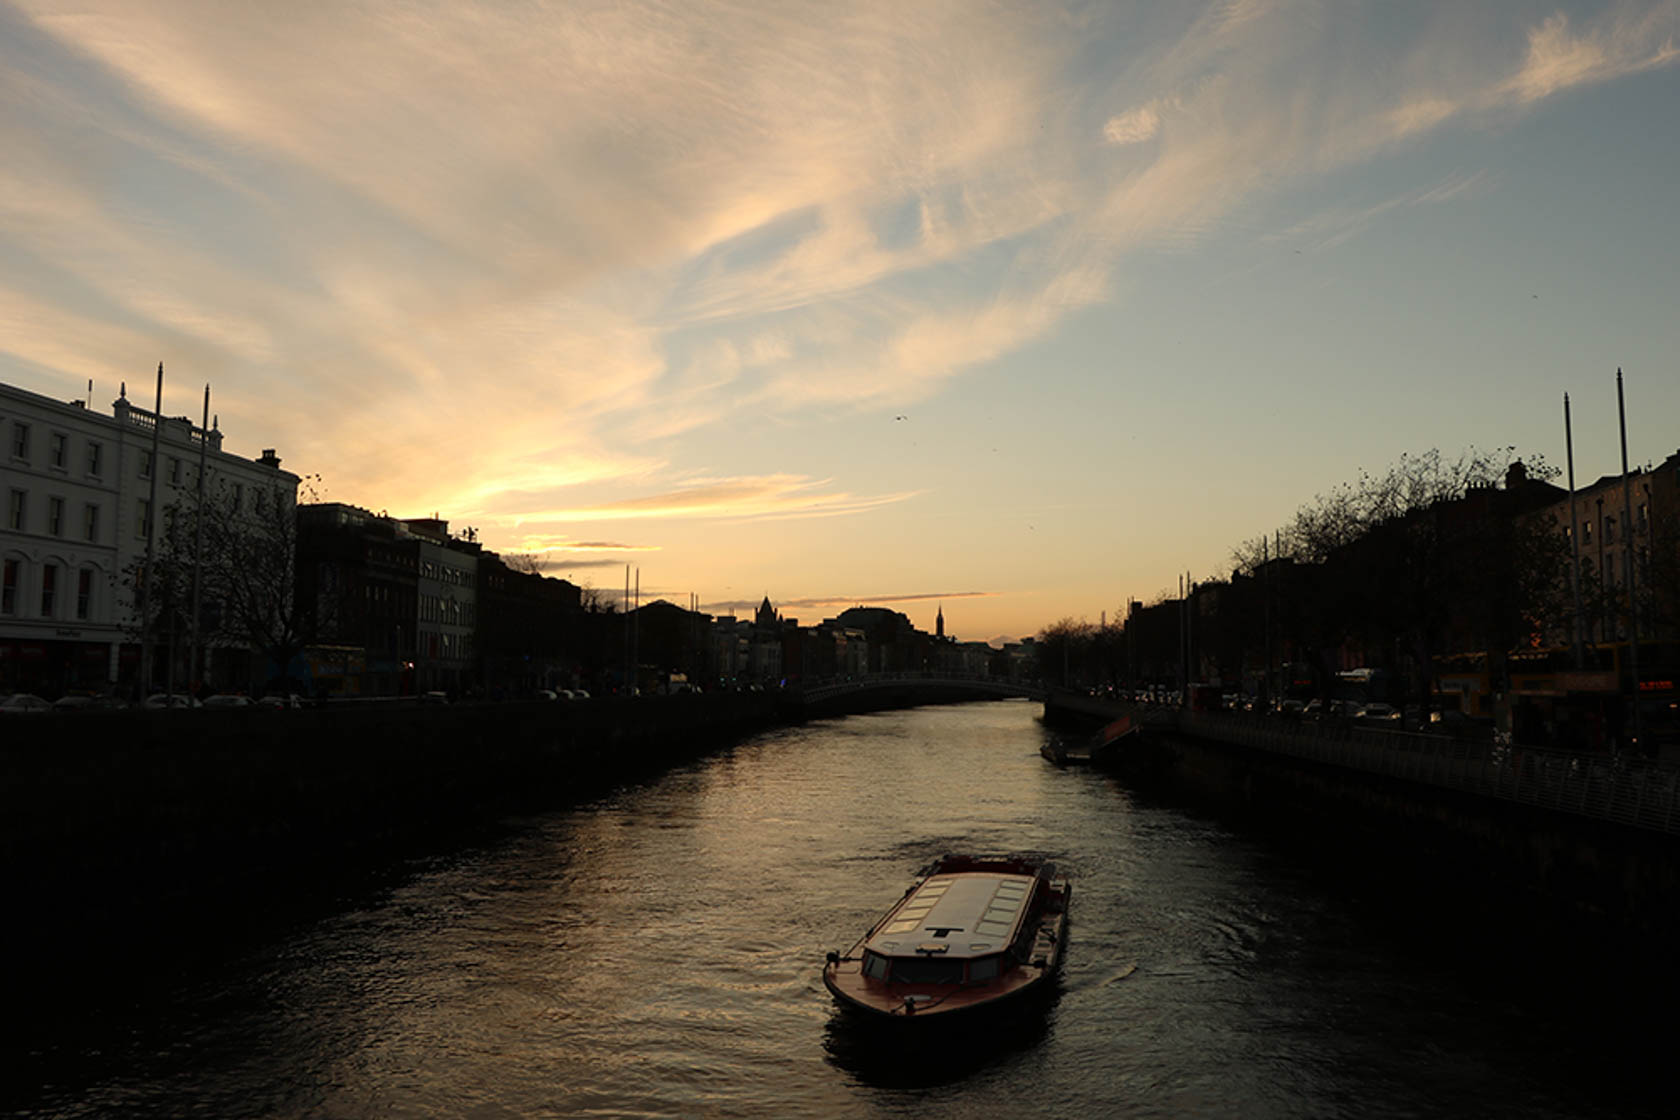 Boat on a river at sunset taken with the Canon EOS 760D digital SLR camera